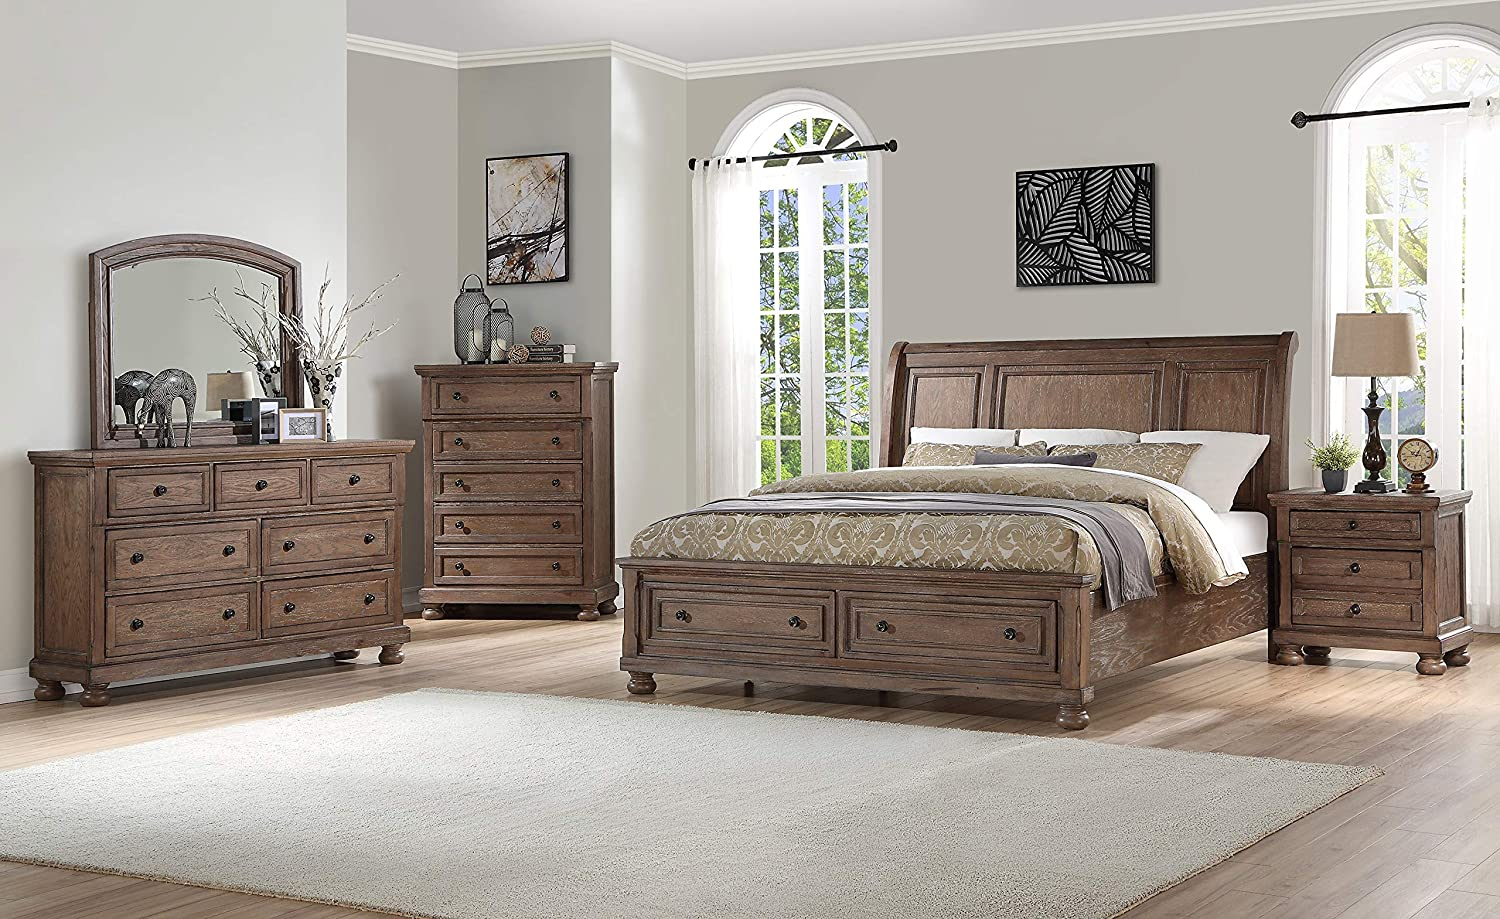 Fortuna 5 Piece Queen Bedroom Set with Chest in Weathered Brown Finish